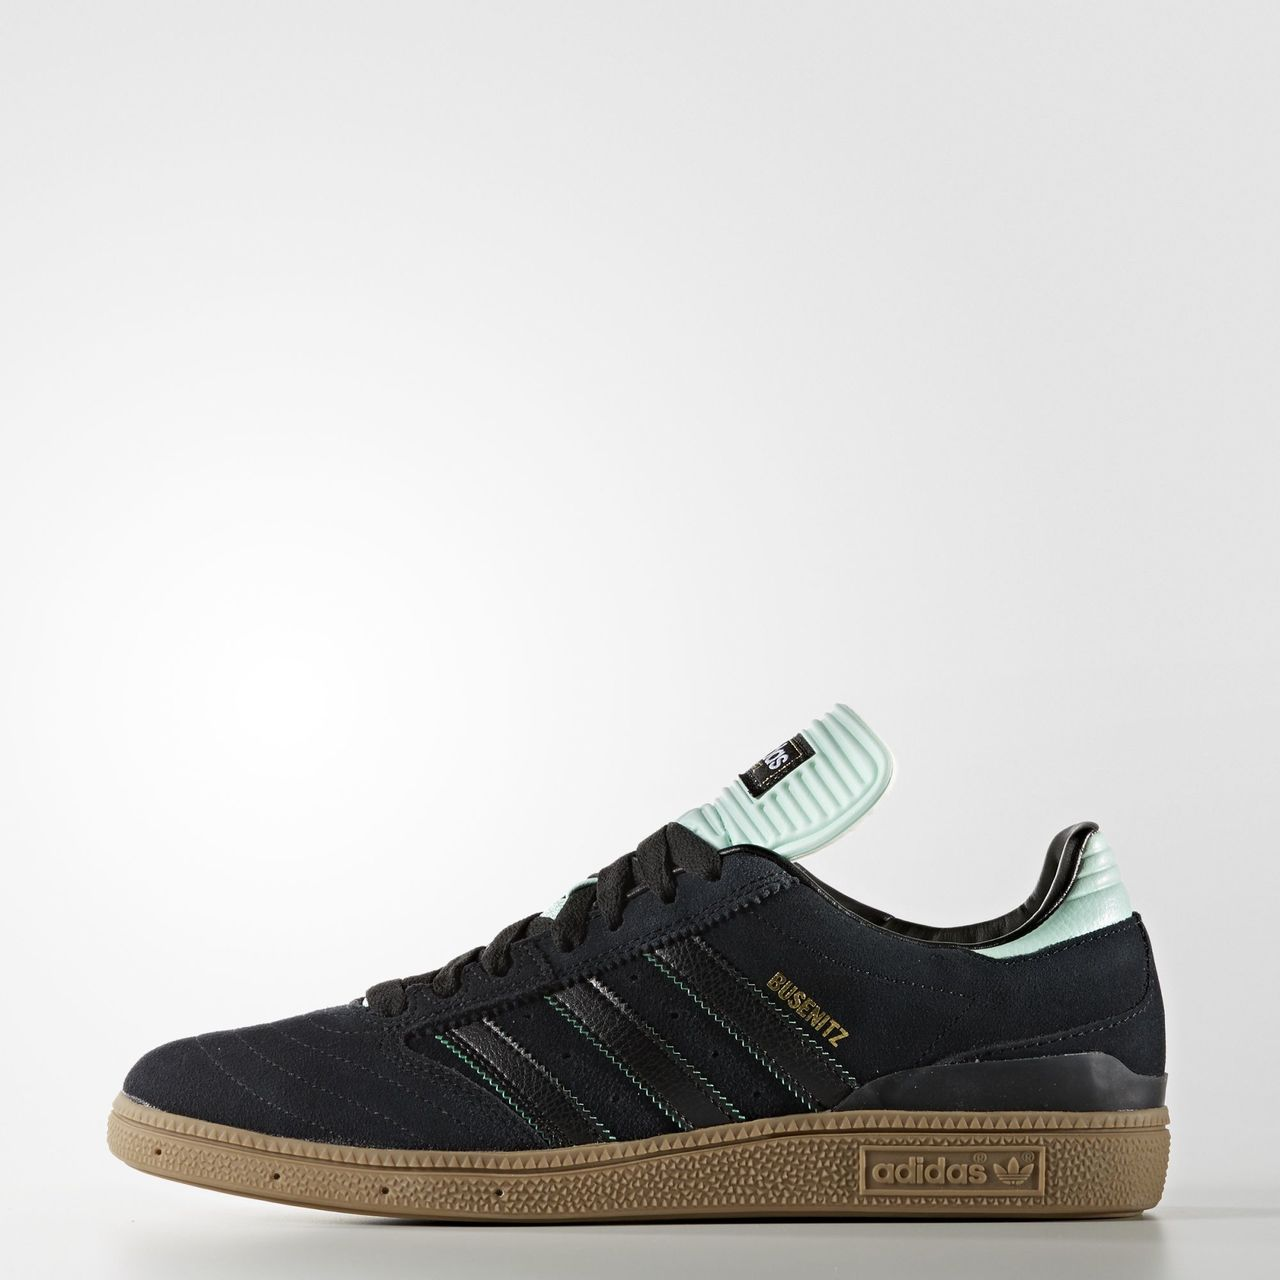 1ac53073007926 Adidas Busenitz Pro Shoes - Core Black   Ice Green   Gum